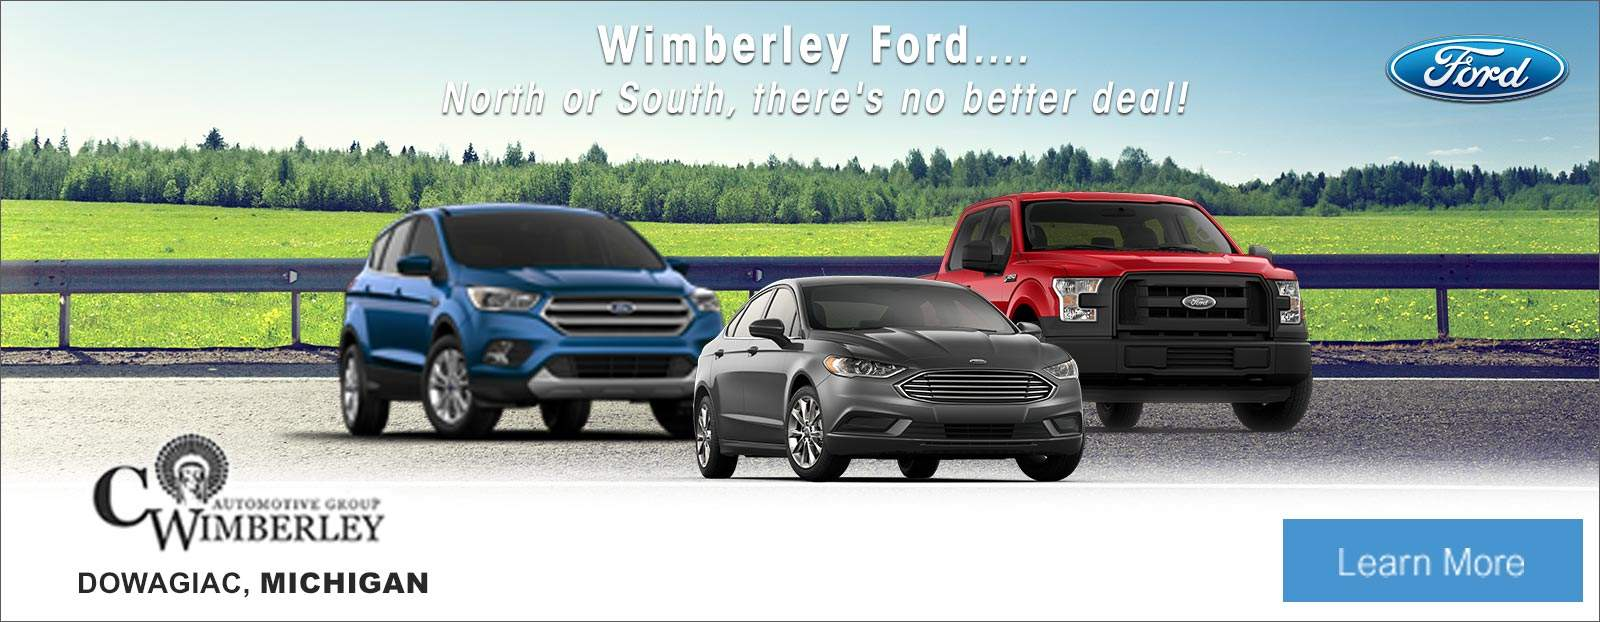 New Used Vehicles From Ford Chevrolet Buick And GMC - Chevrolet ford